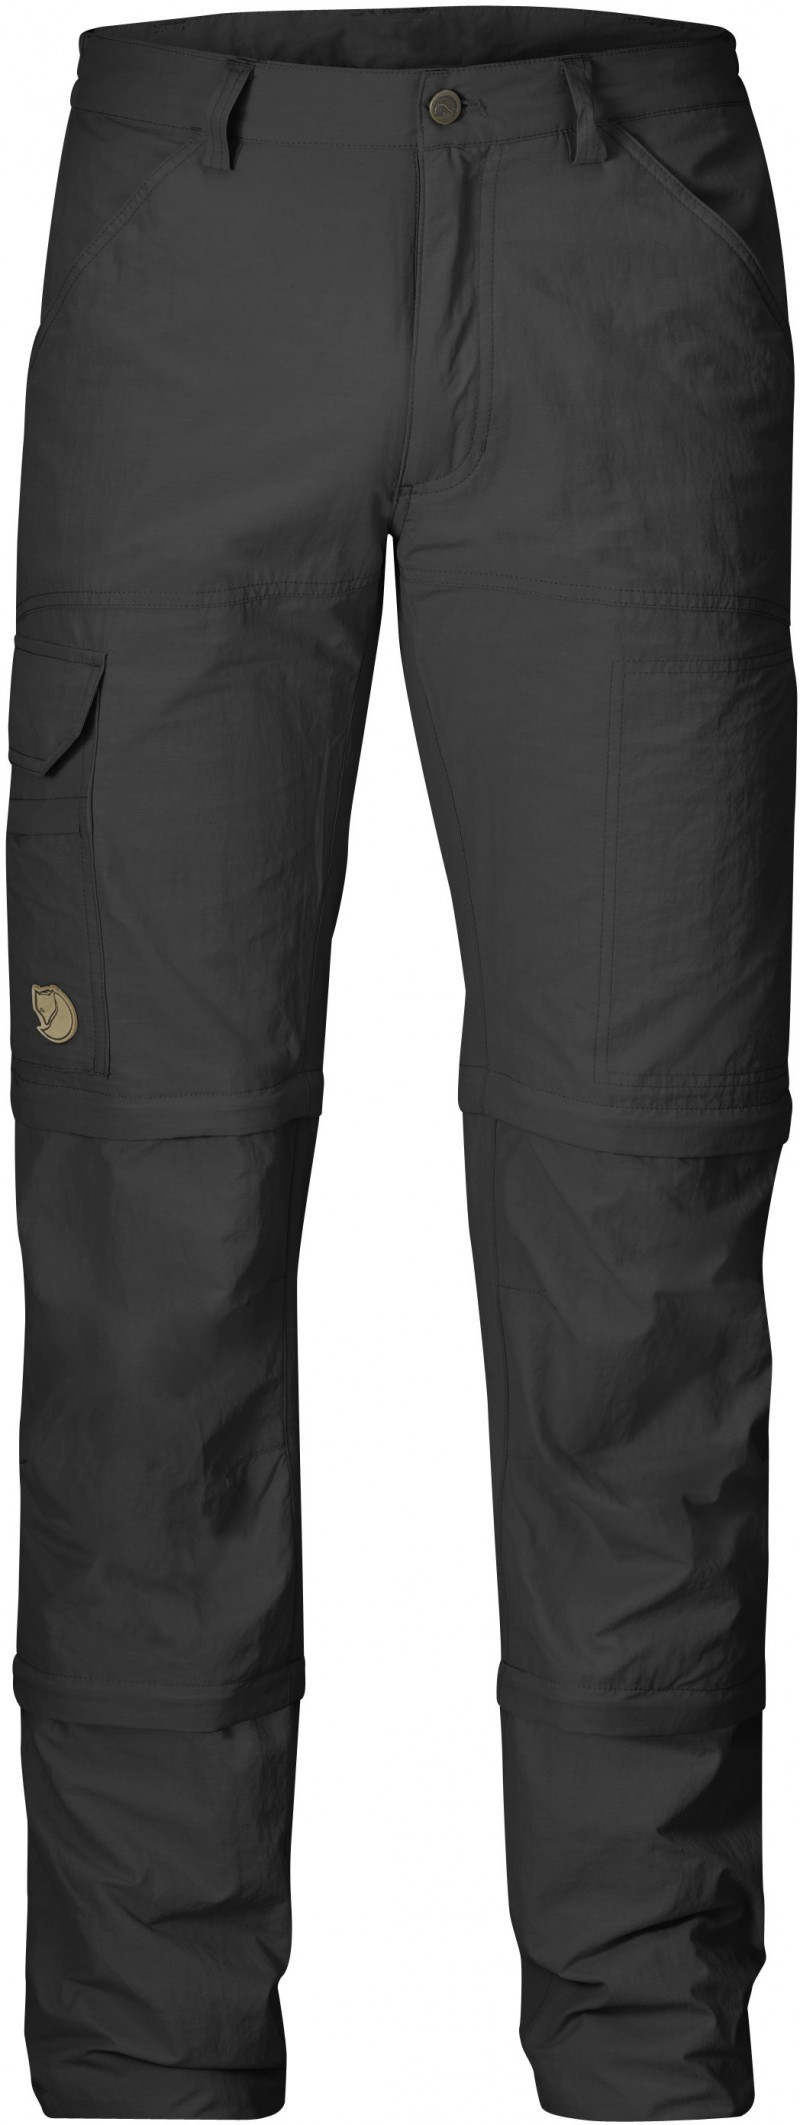 FjallRaven Cape Point MT 3-stage Trousers Dark Grey-30